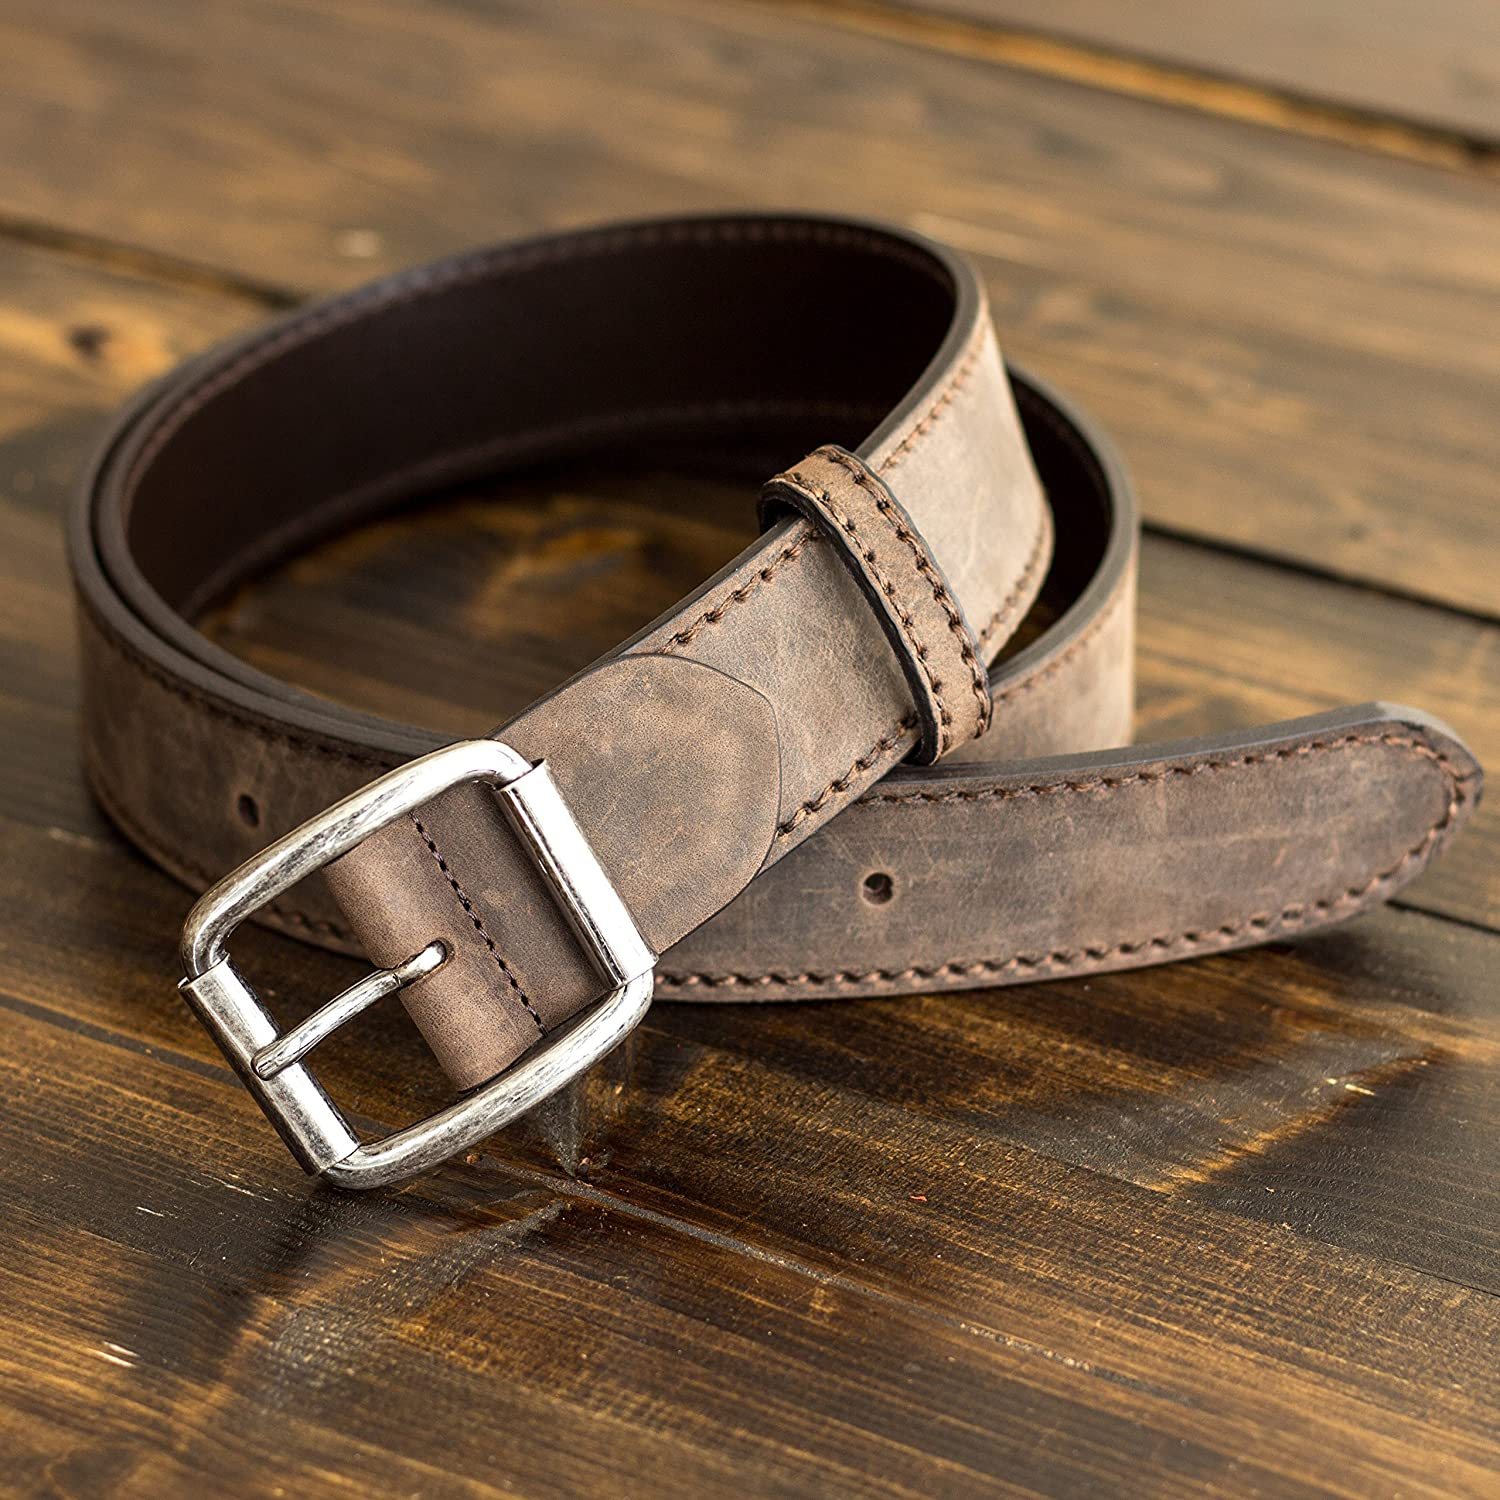 Pegai Personalized Distressed Leather Belt for Men, Rustic Minimalist Leather Belt, Monogrammed Unique Belt - Logan Chestnut